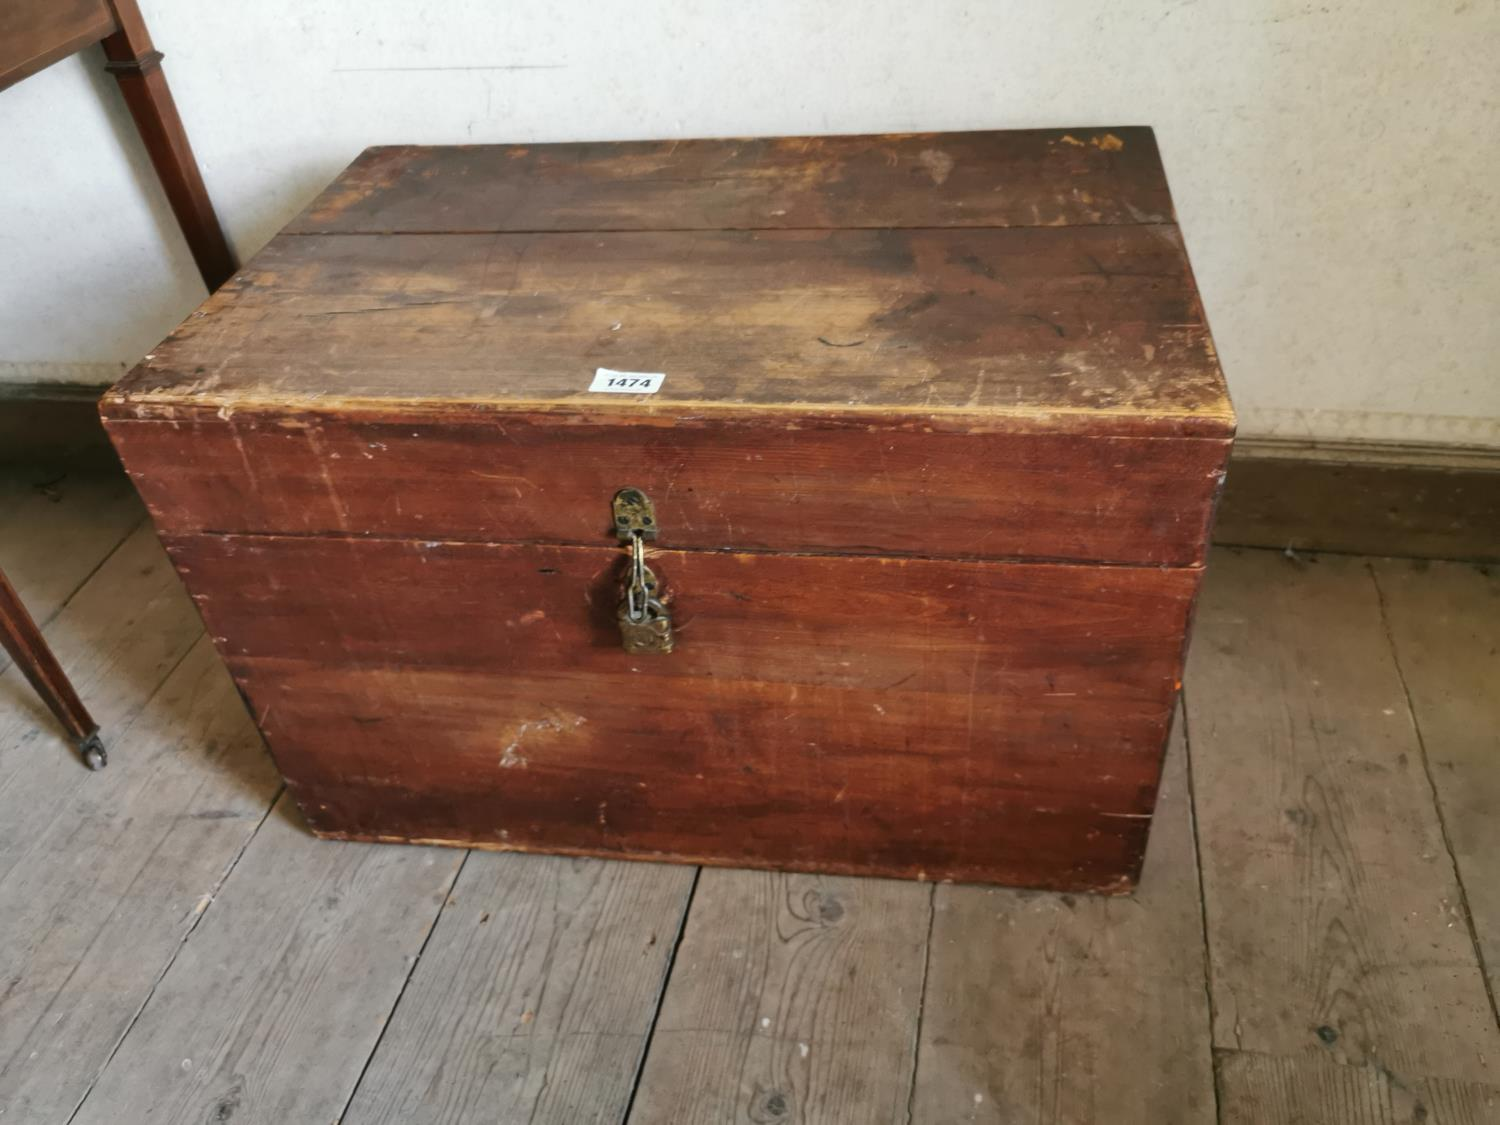 Early 20th C. pine trunk.